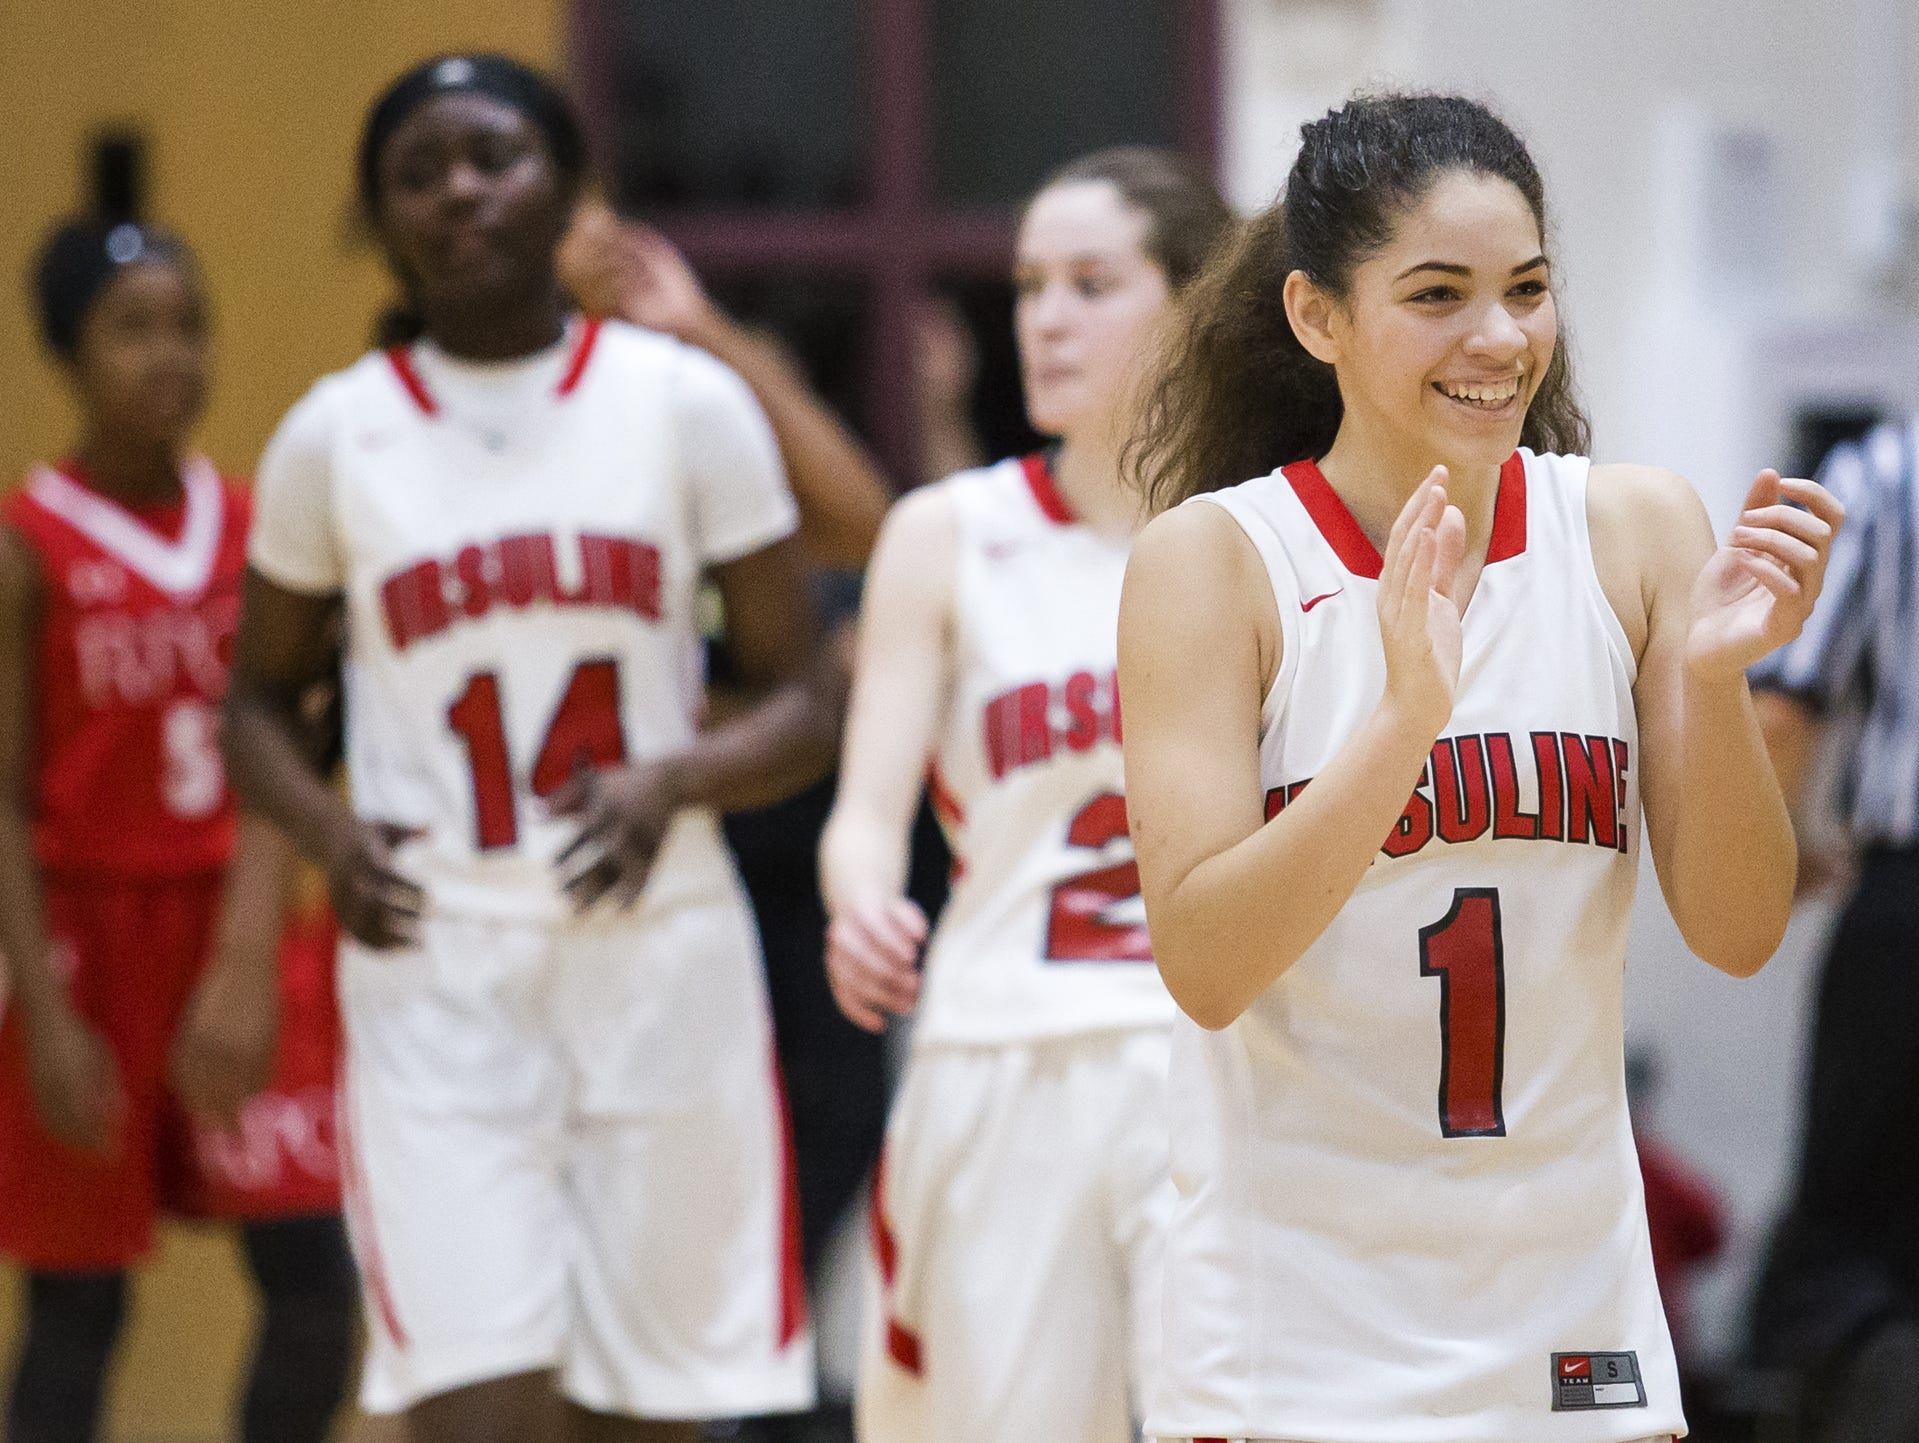 Ursuline's Alisha Lewis (1) was voted girls player of the year and heads the DSBA All-State girls basketball team released Wednesday.